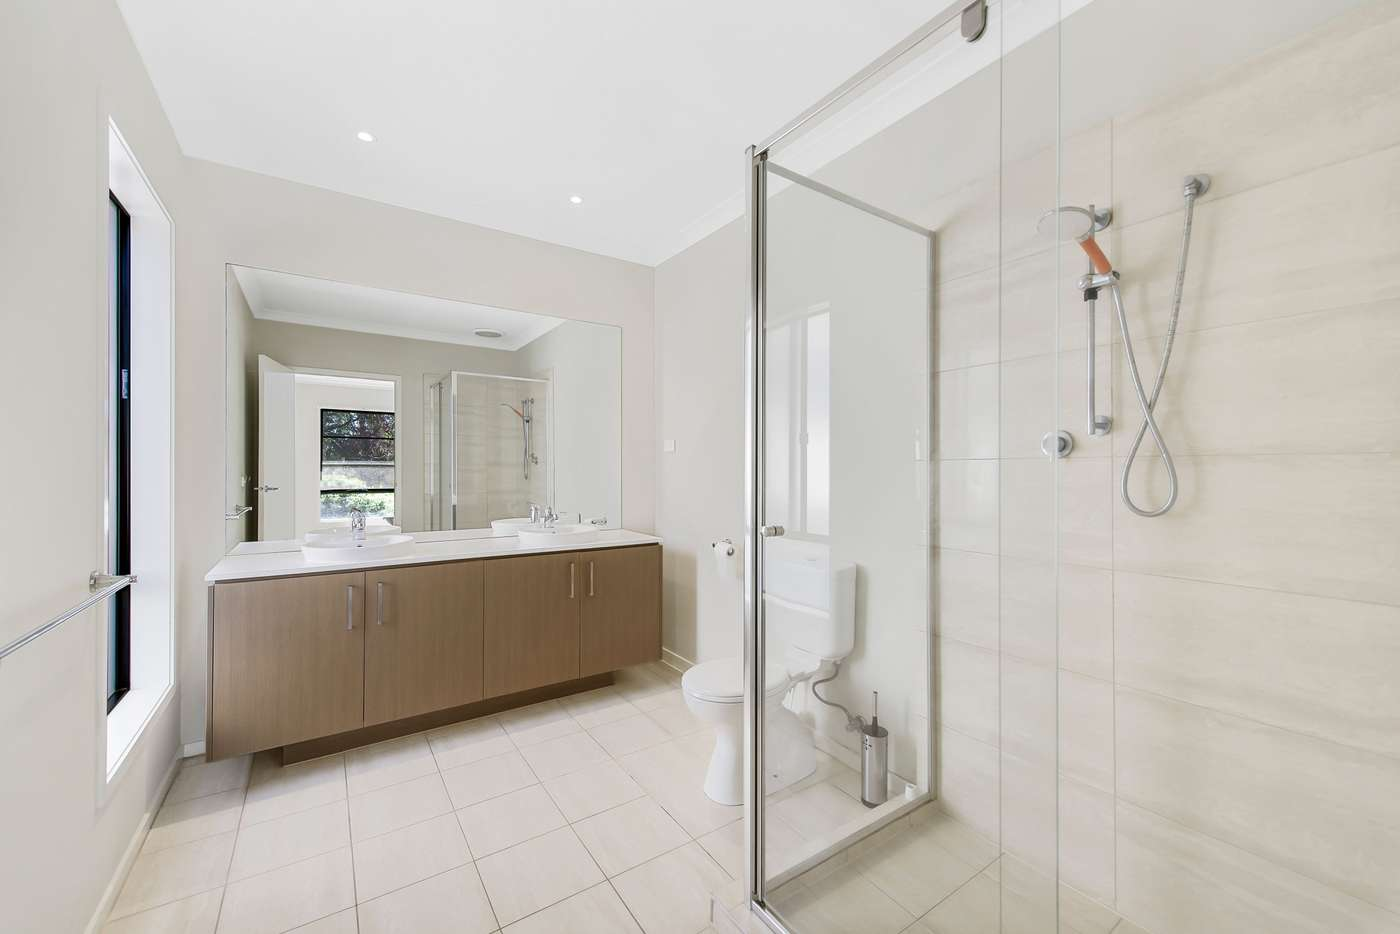 Seventh view of Homely house listing, 78 Lawson Way, Caroline Springs VIC 3023